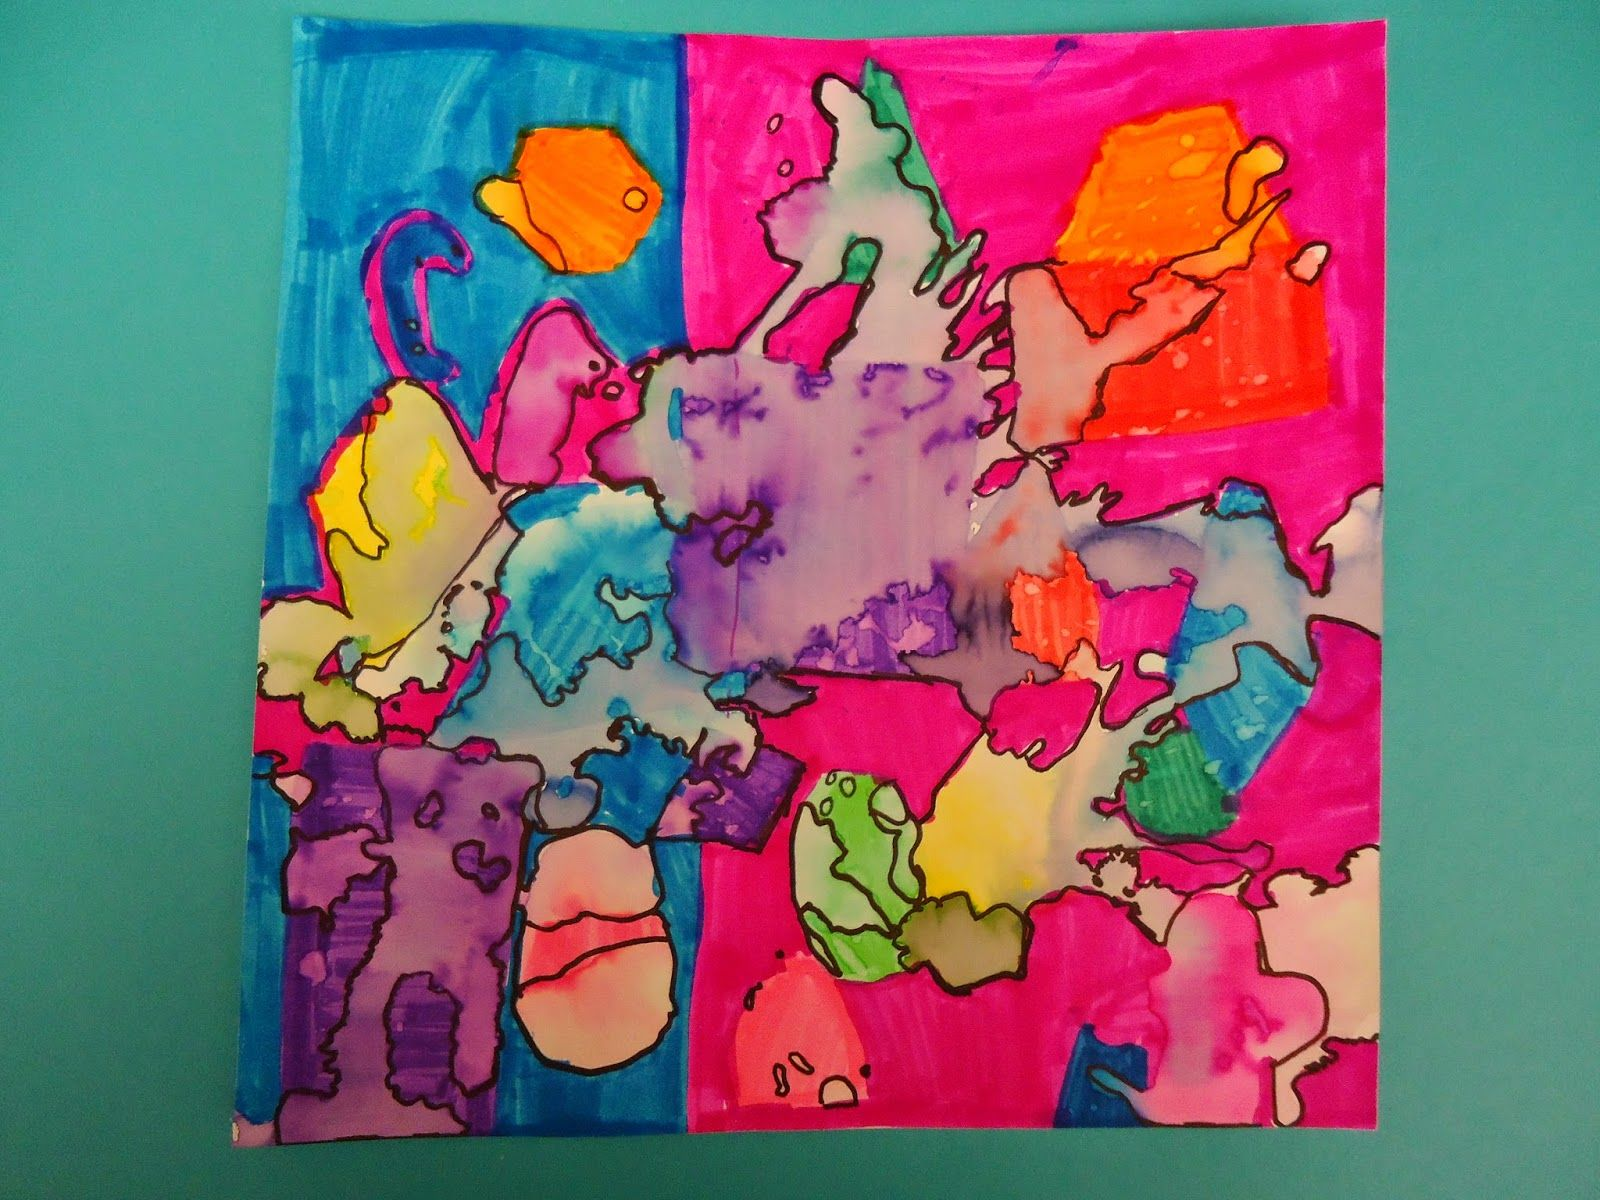 mini matisse free form to geometric shapes it was a quick two day